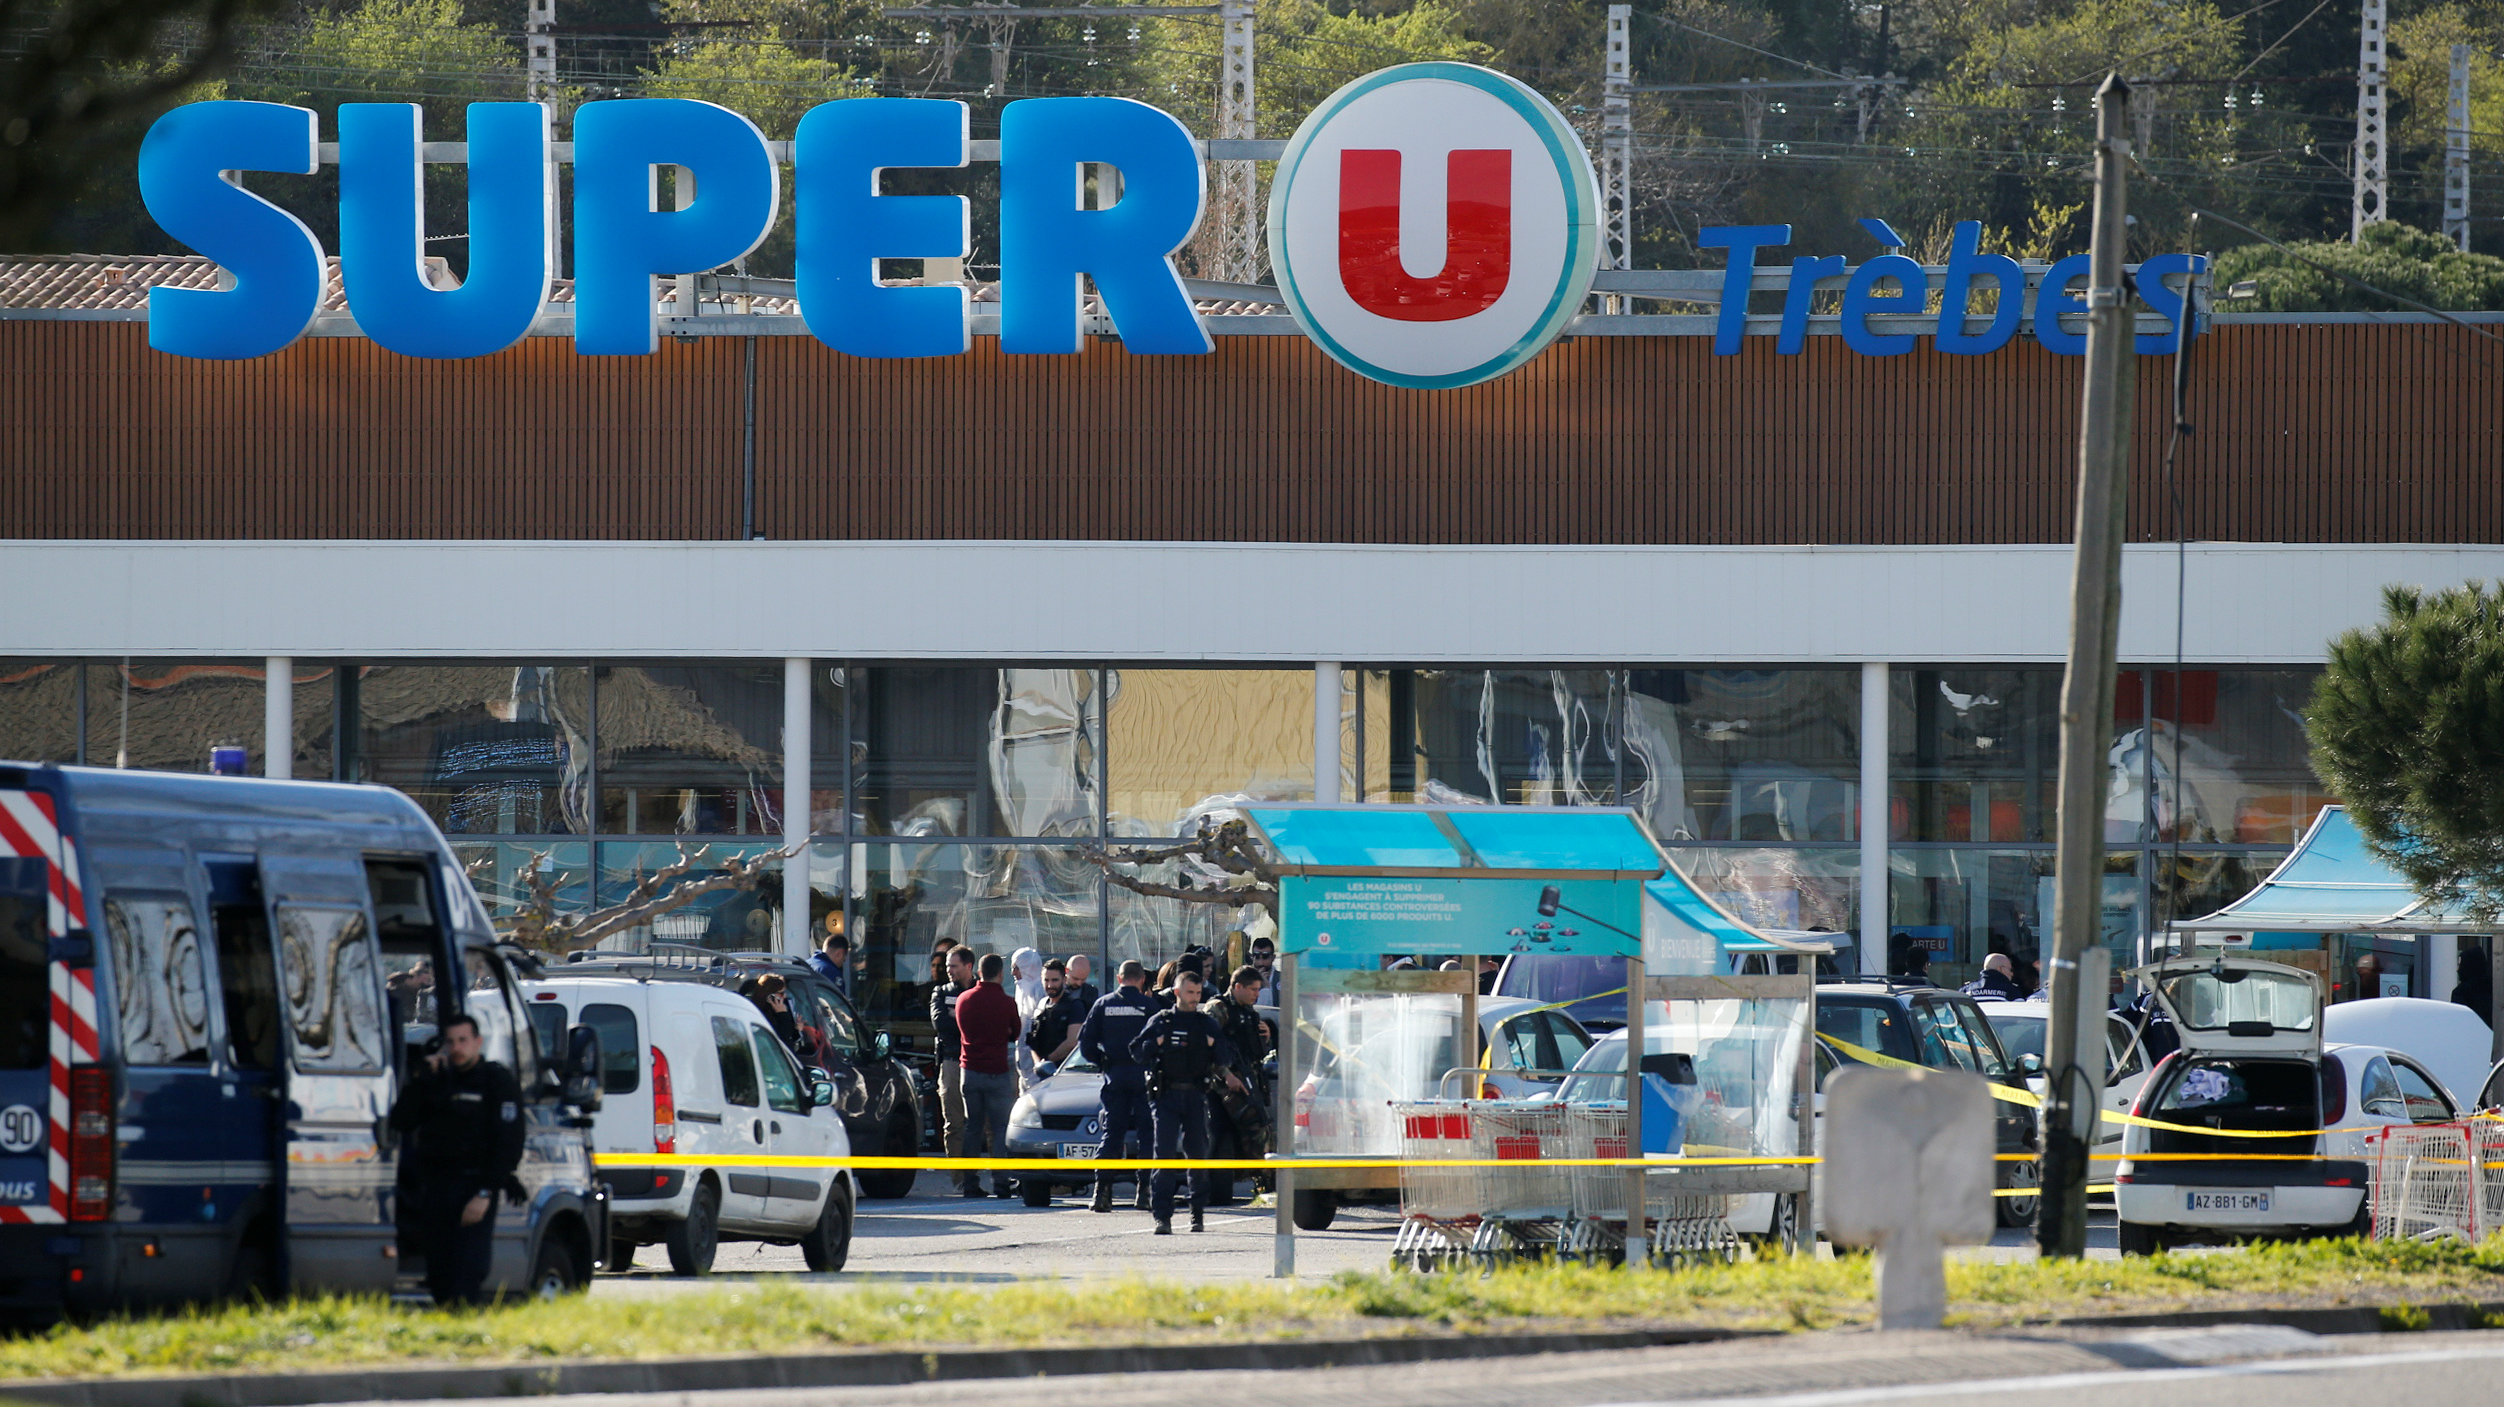 general view shows gendarmes and police officers at a supermarket after a hostage situation.